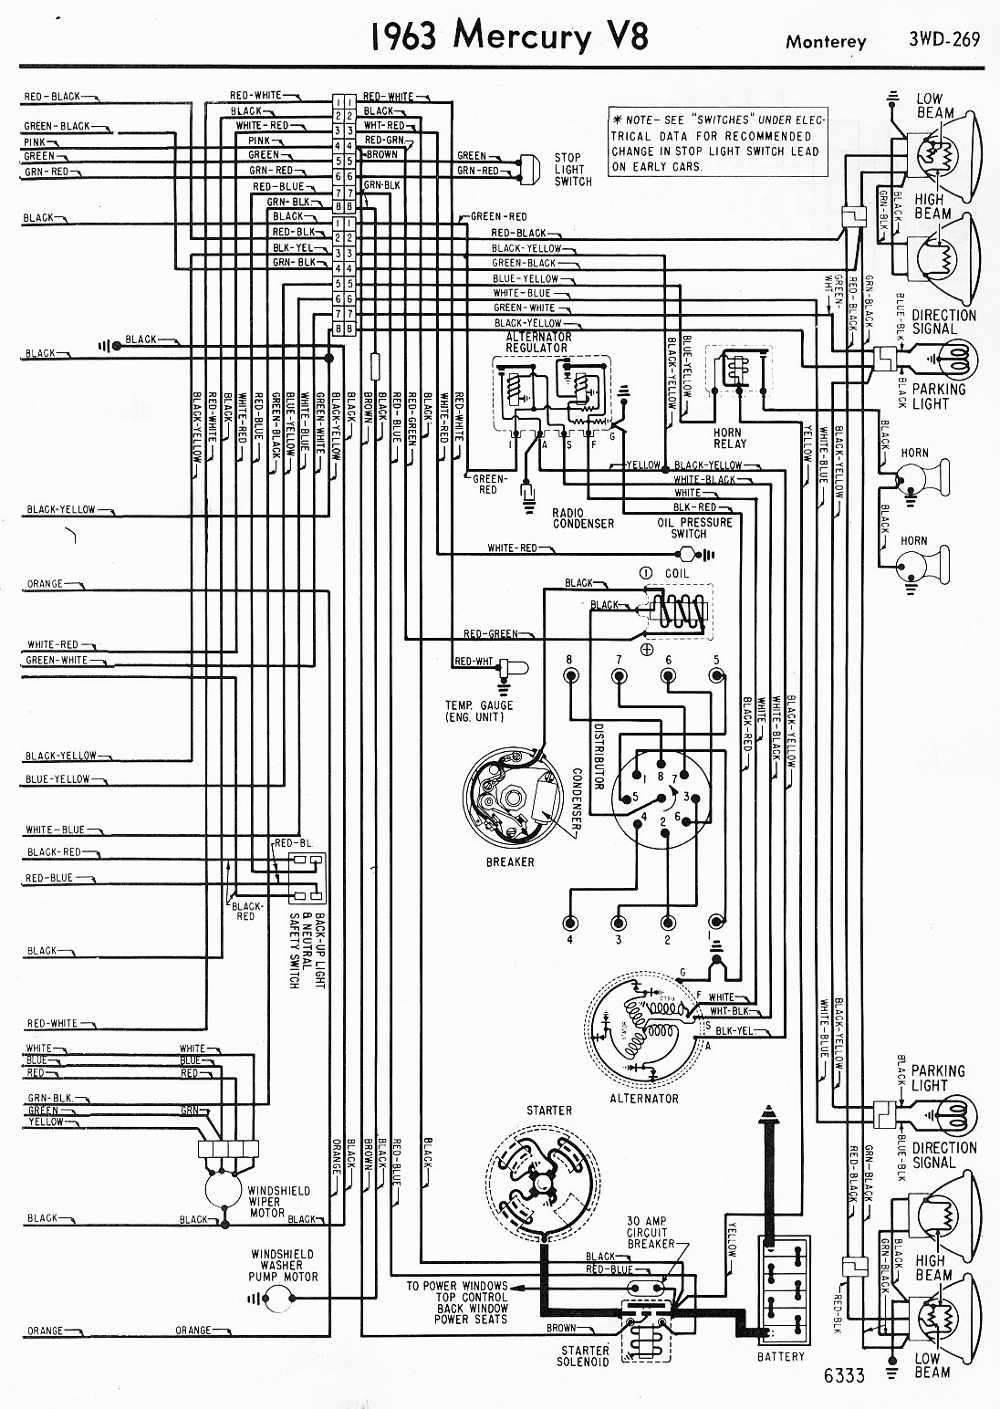 hight resolution of wiring diagram 17 95 choose options compare 1953 desoto color wiring1956 mercury wiring diagram wiring diagram